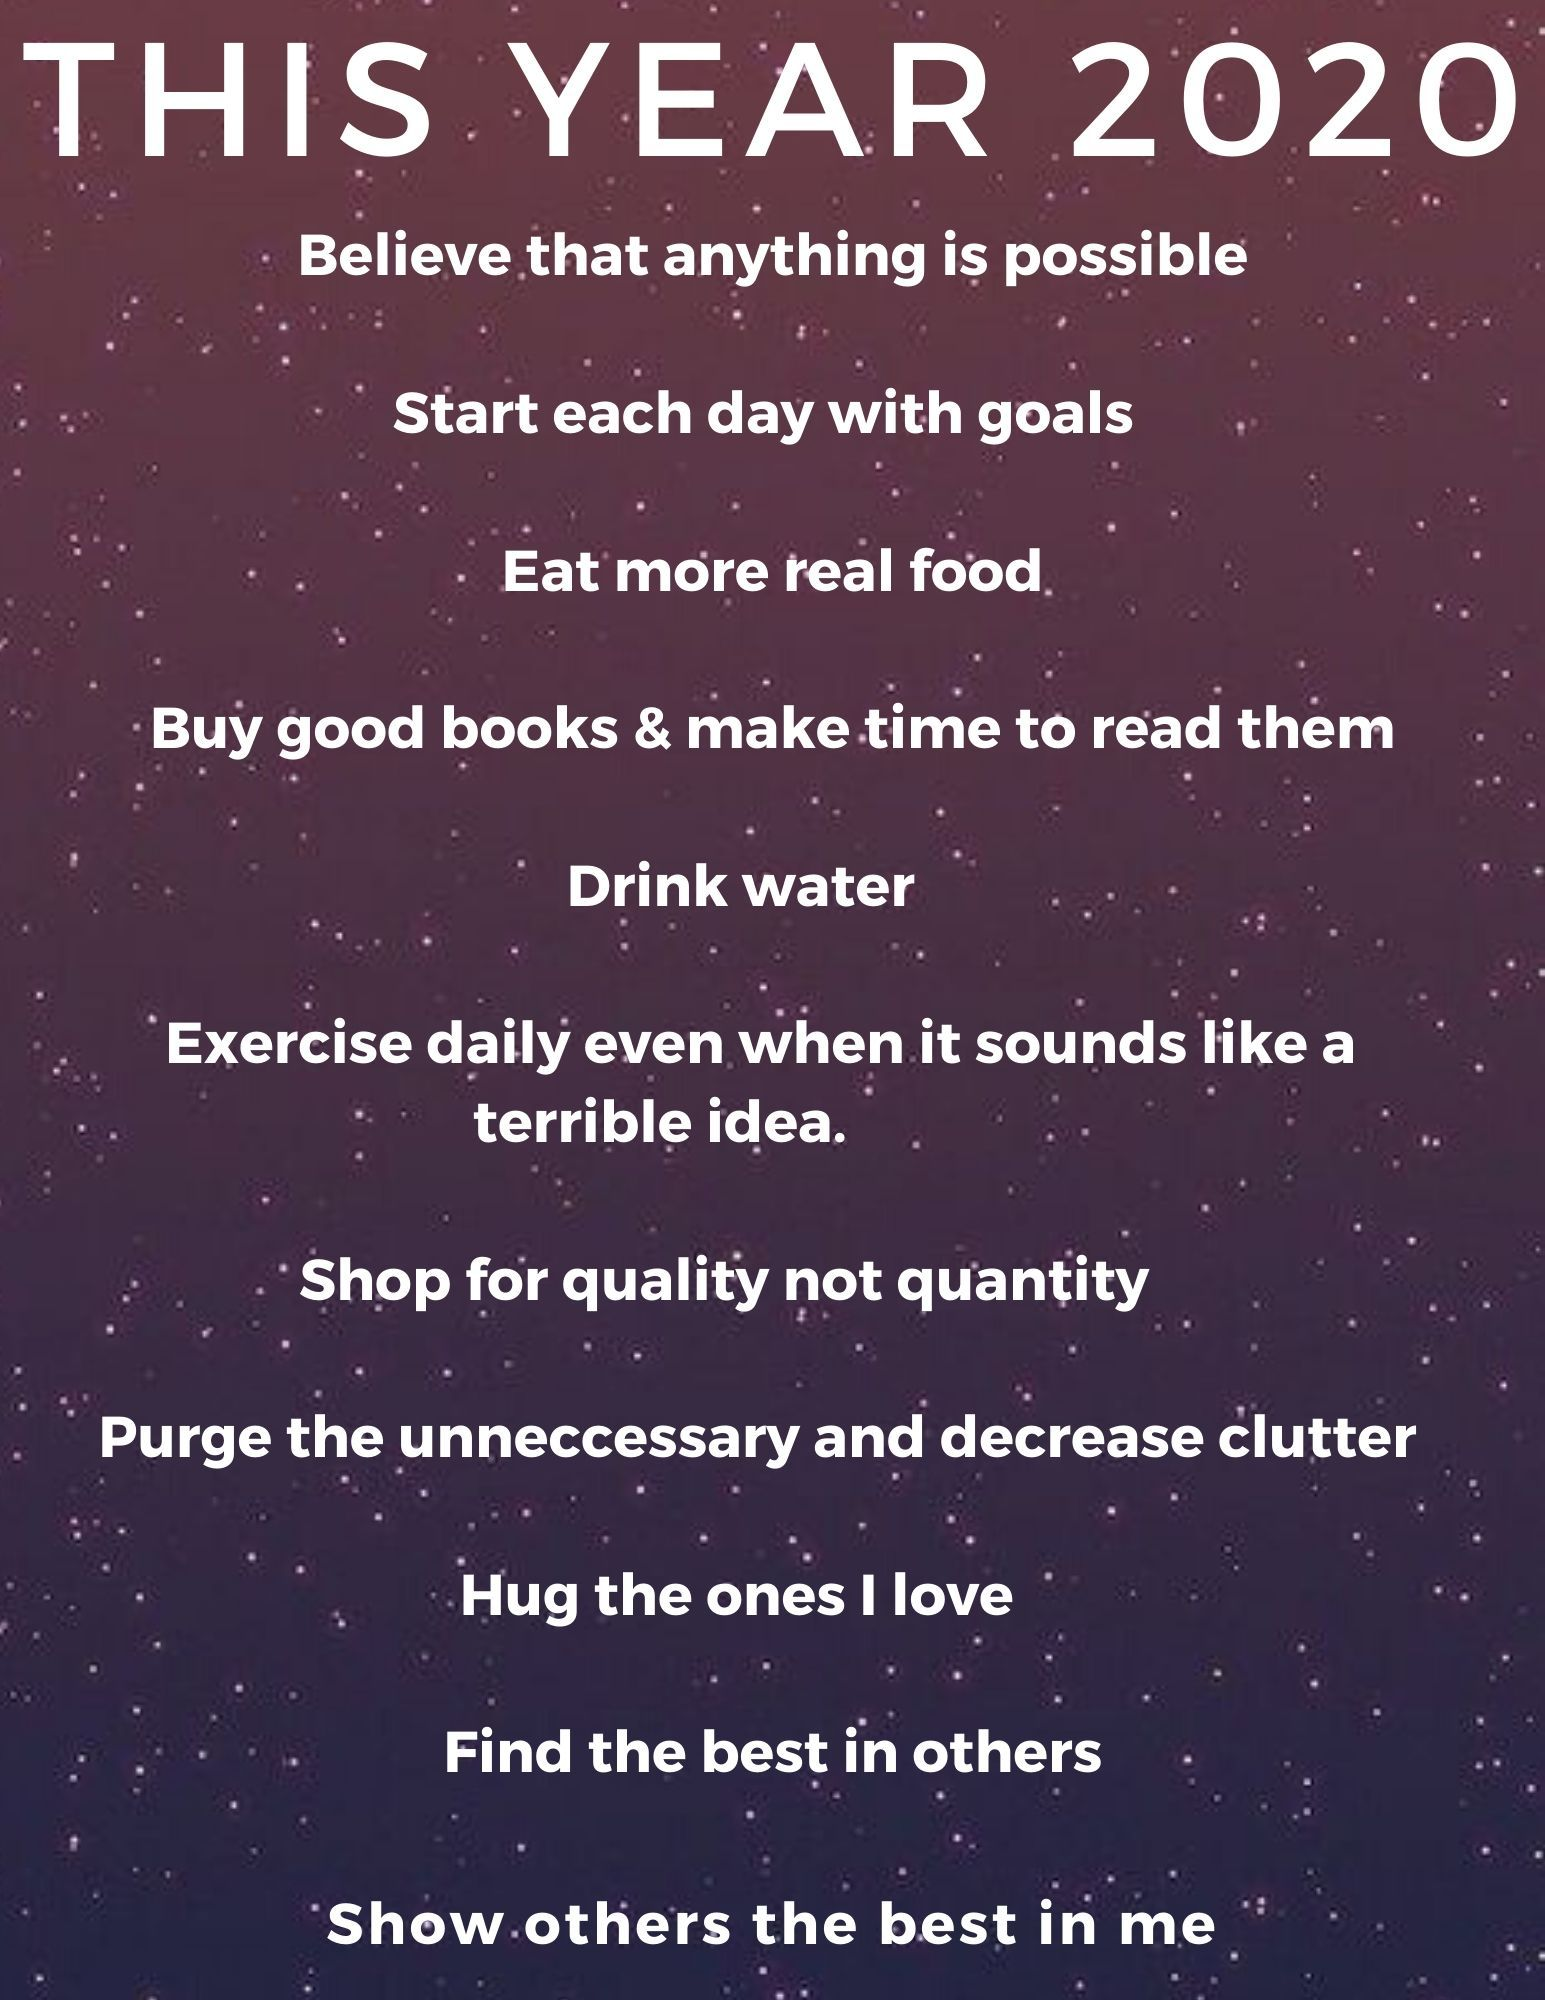 This Year Quotes Messages Words 2020 Quotes About New Year New Year Wishes Quotes New Year Inspirational Quotes